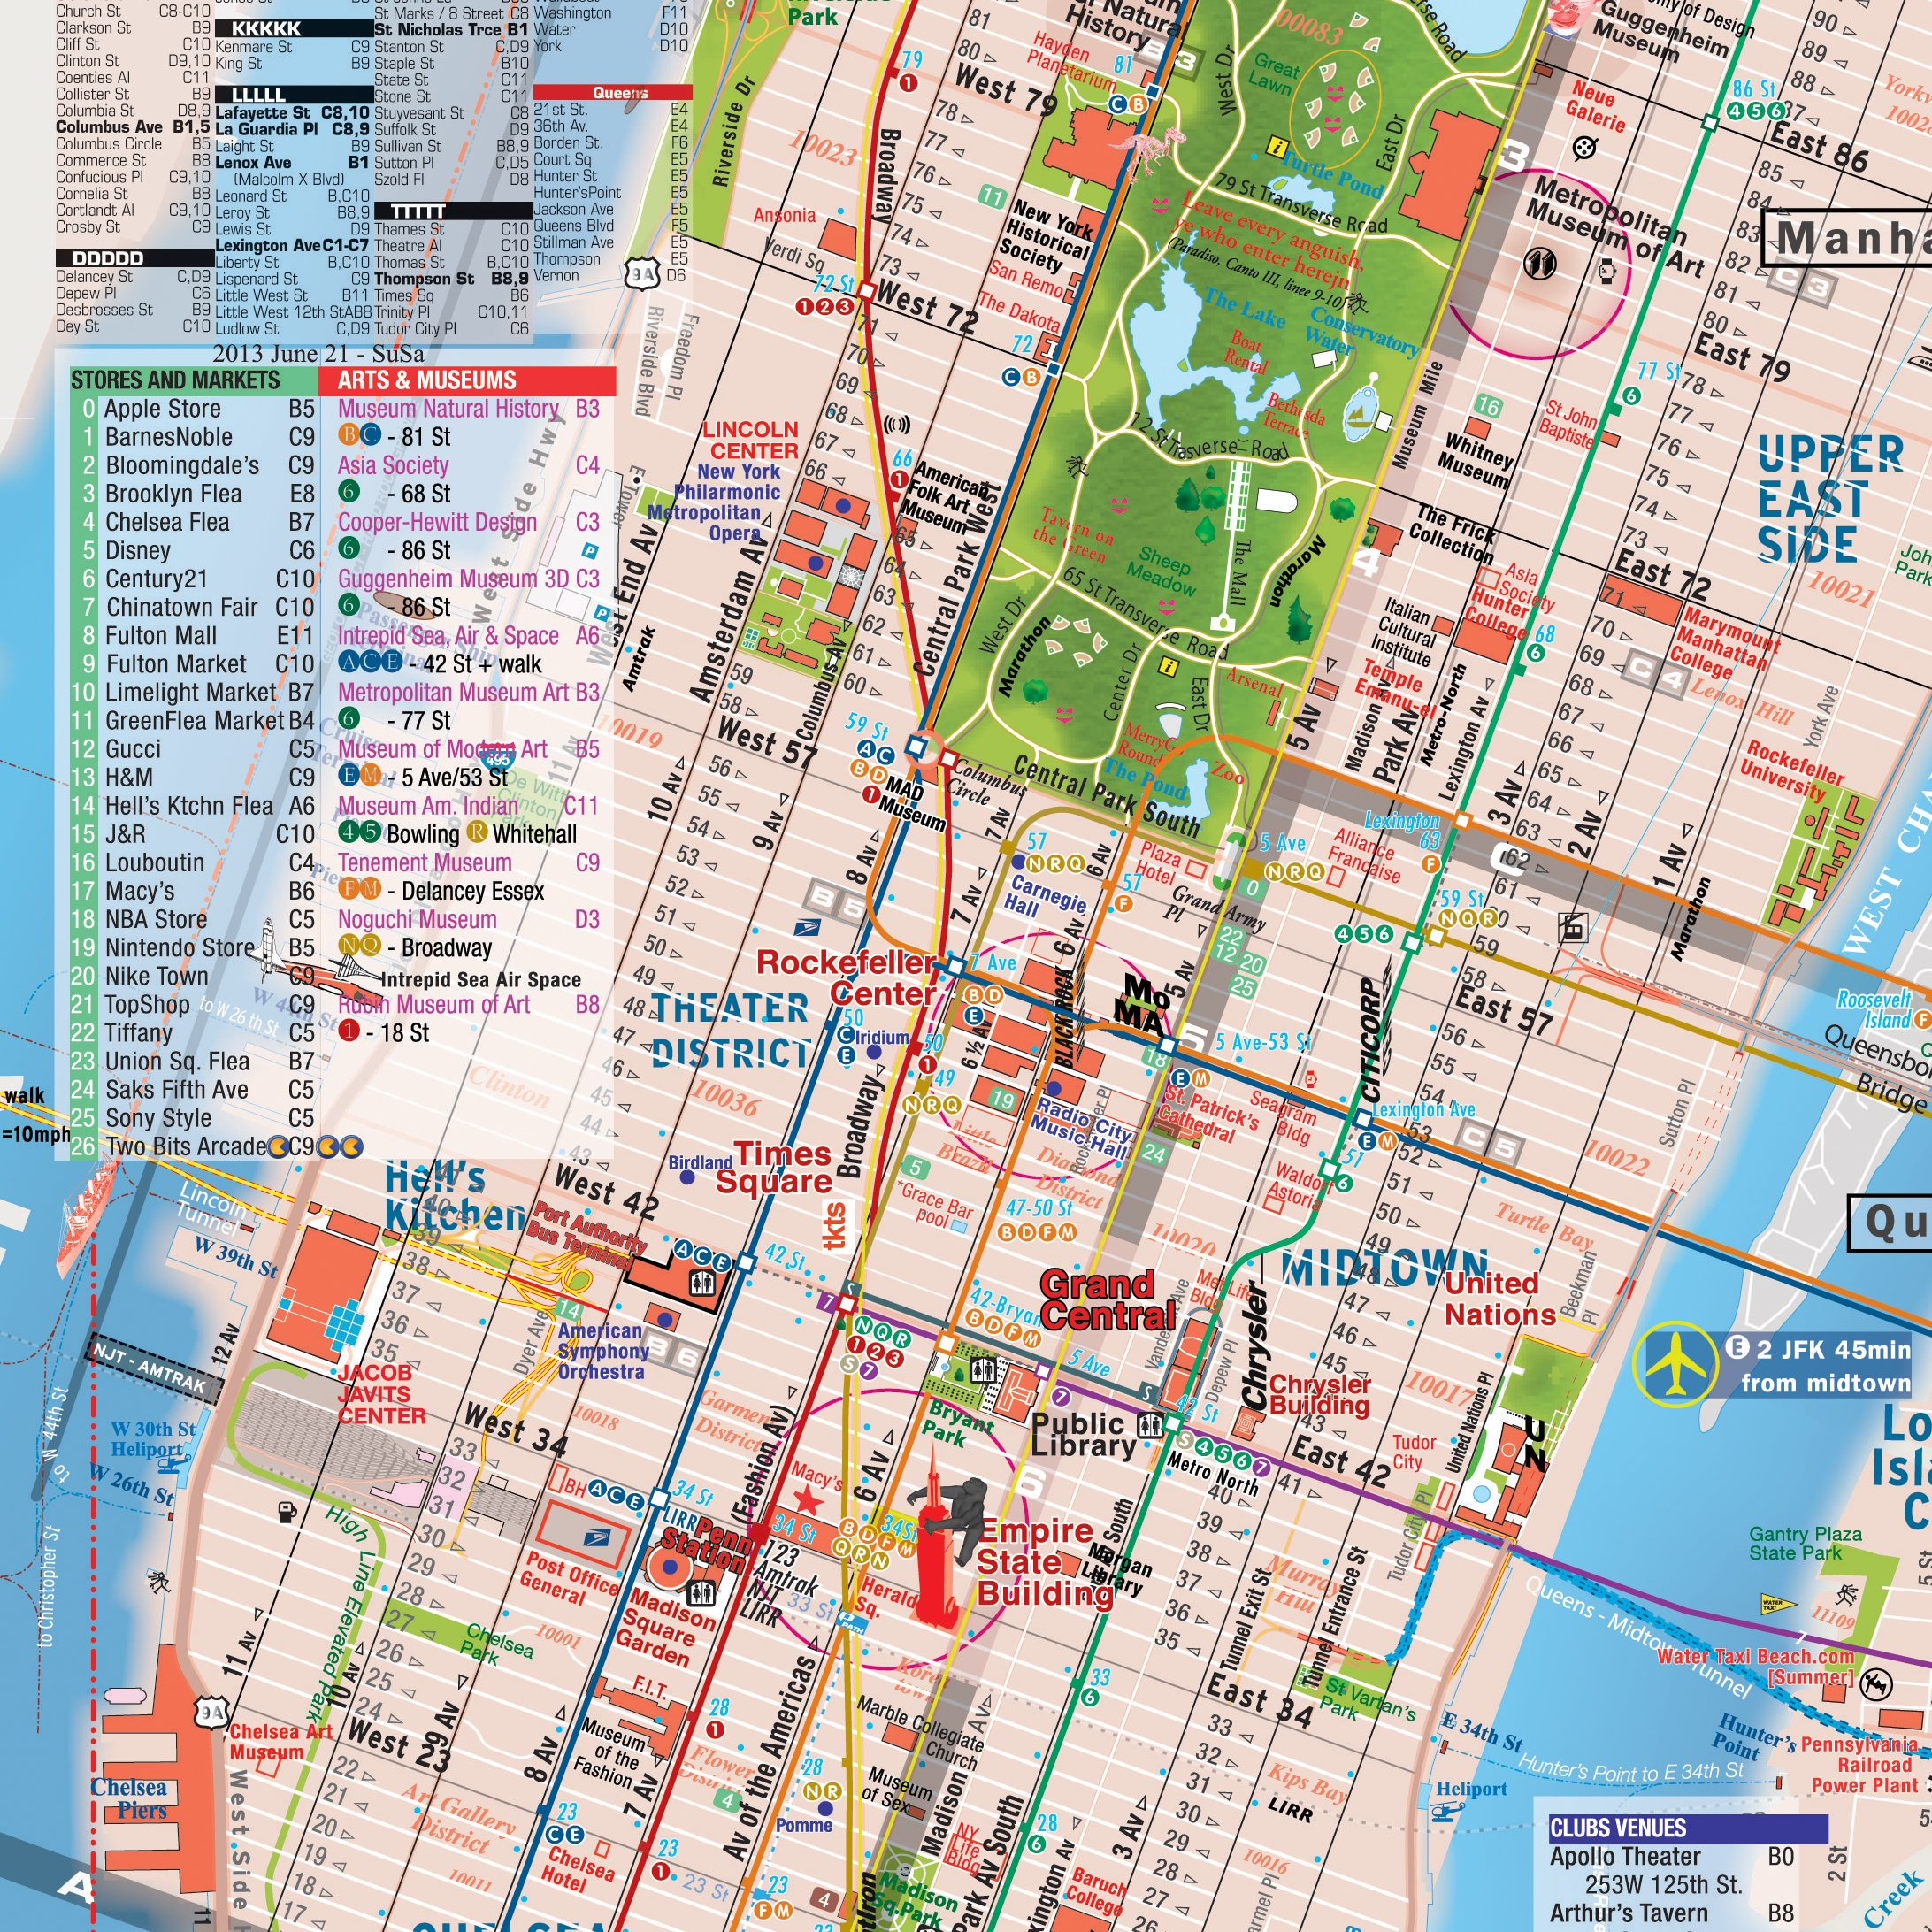 Map Of New York Landmarks.Nfld Guide Of New York City Map And Listings Landmarks Museums